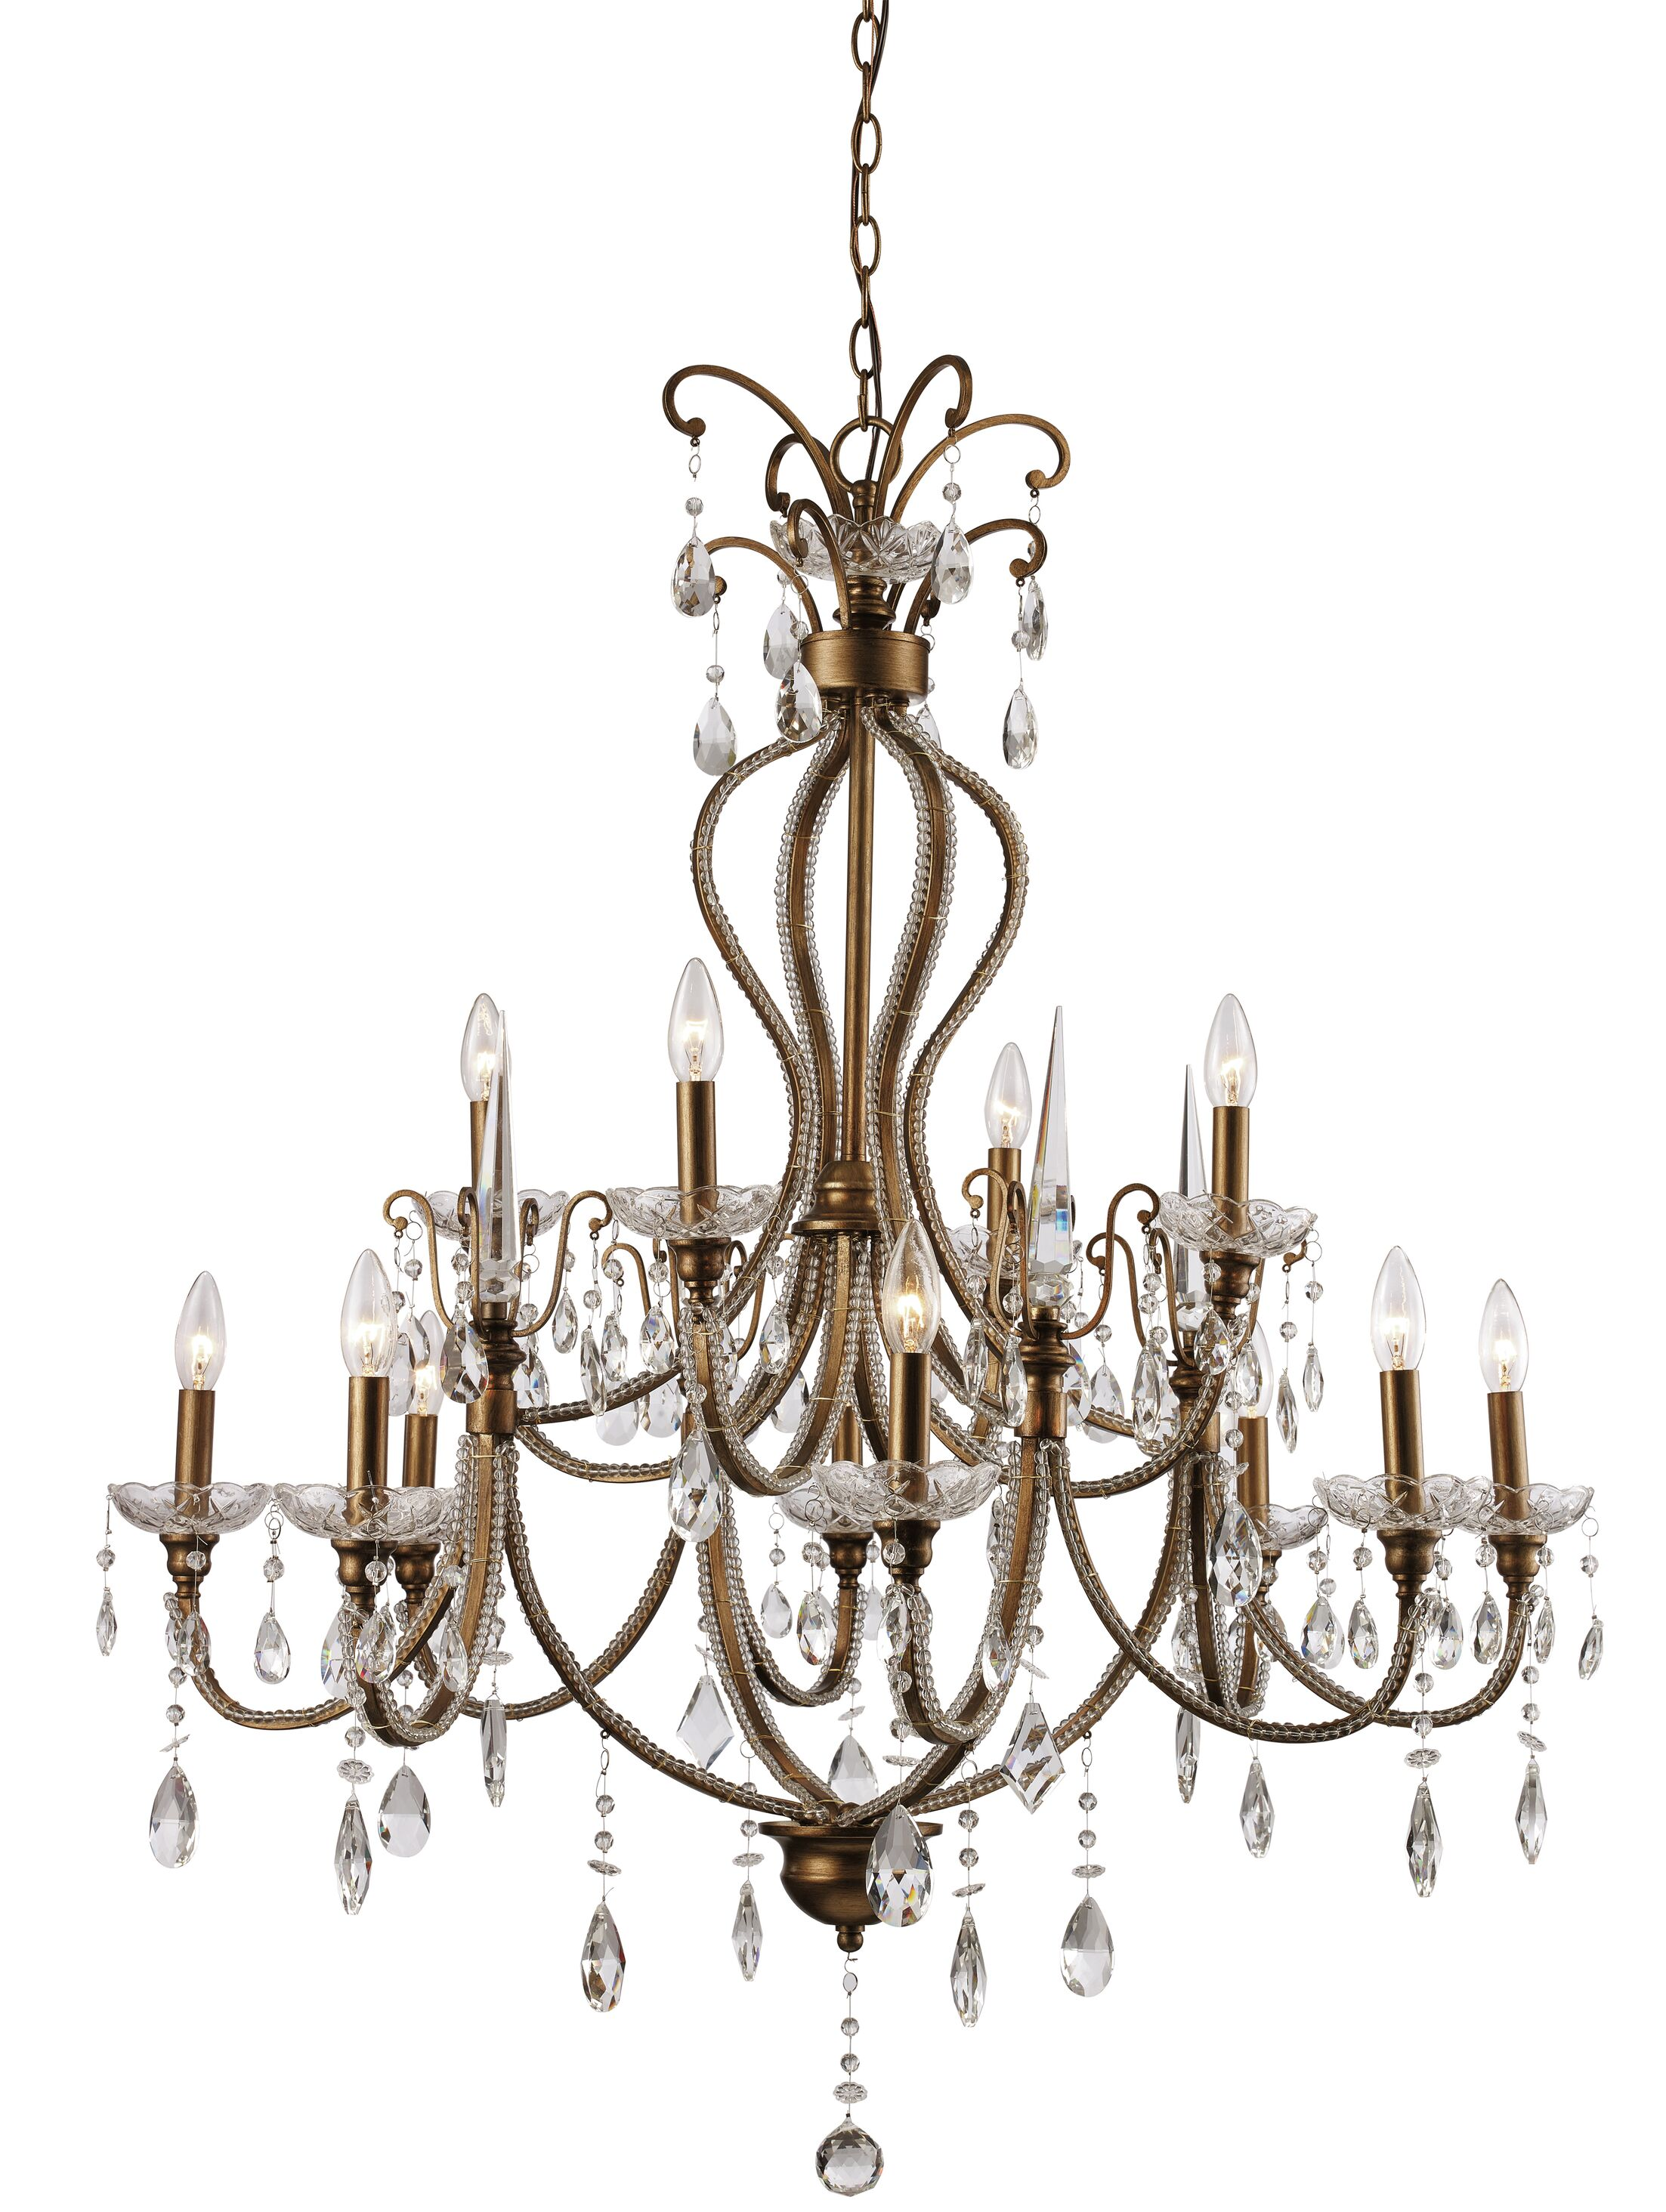 Blandford 12-Light Candle Style Chandelier